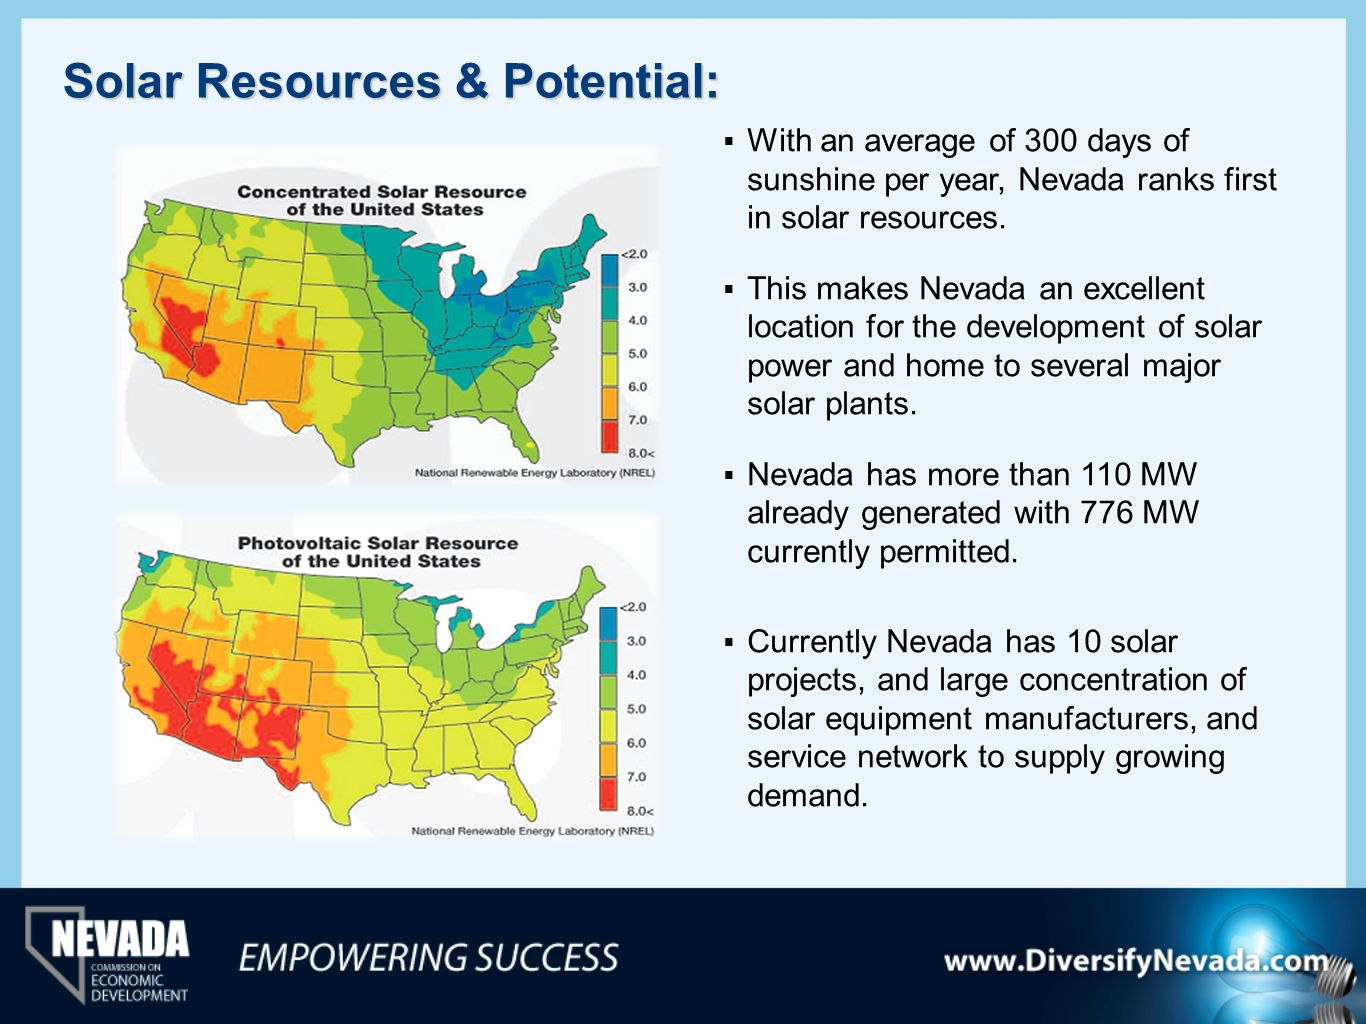 Solar Resources & Potential: With an average of 300 days of sunshine per year, Nevada ranks first in solar resources. This makes Nevada an excellent l